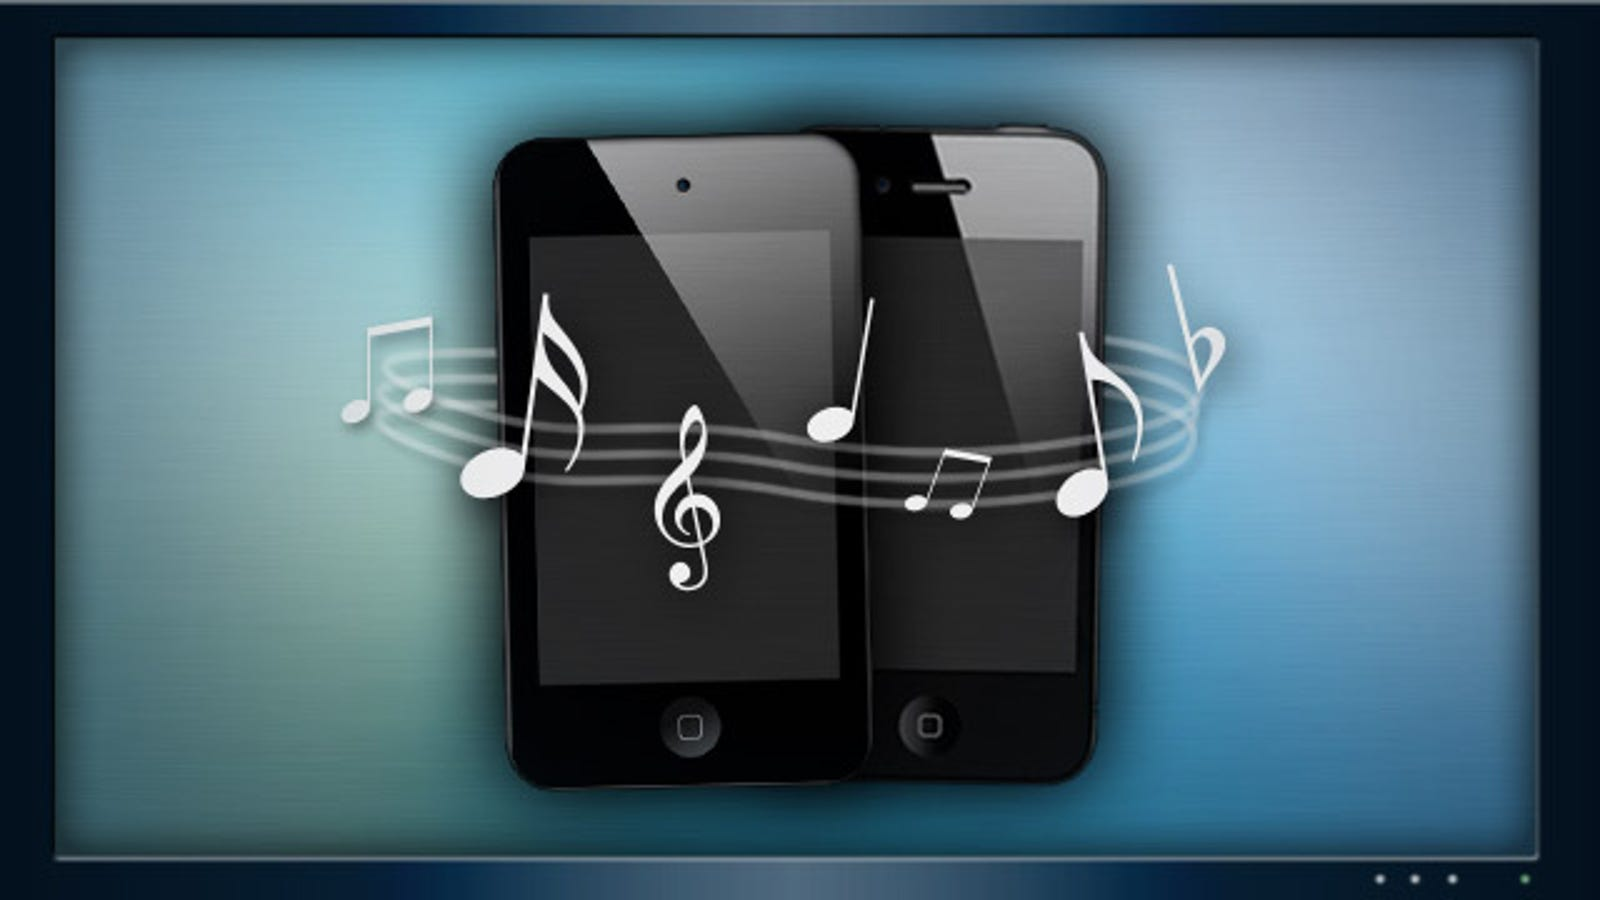 Copy Music from Your iPhone or iPod to Your Computer for Free